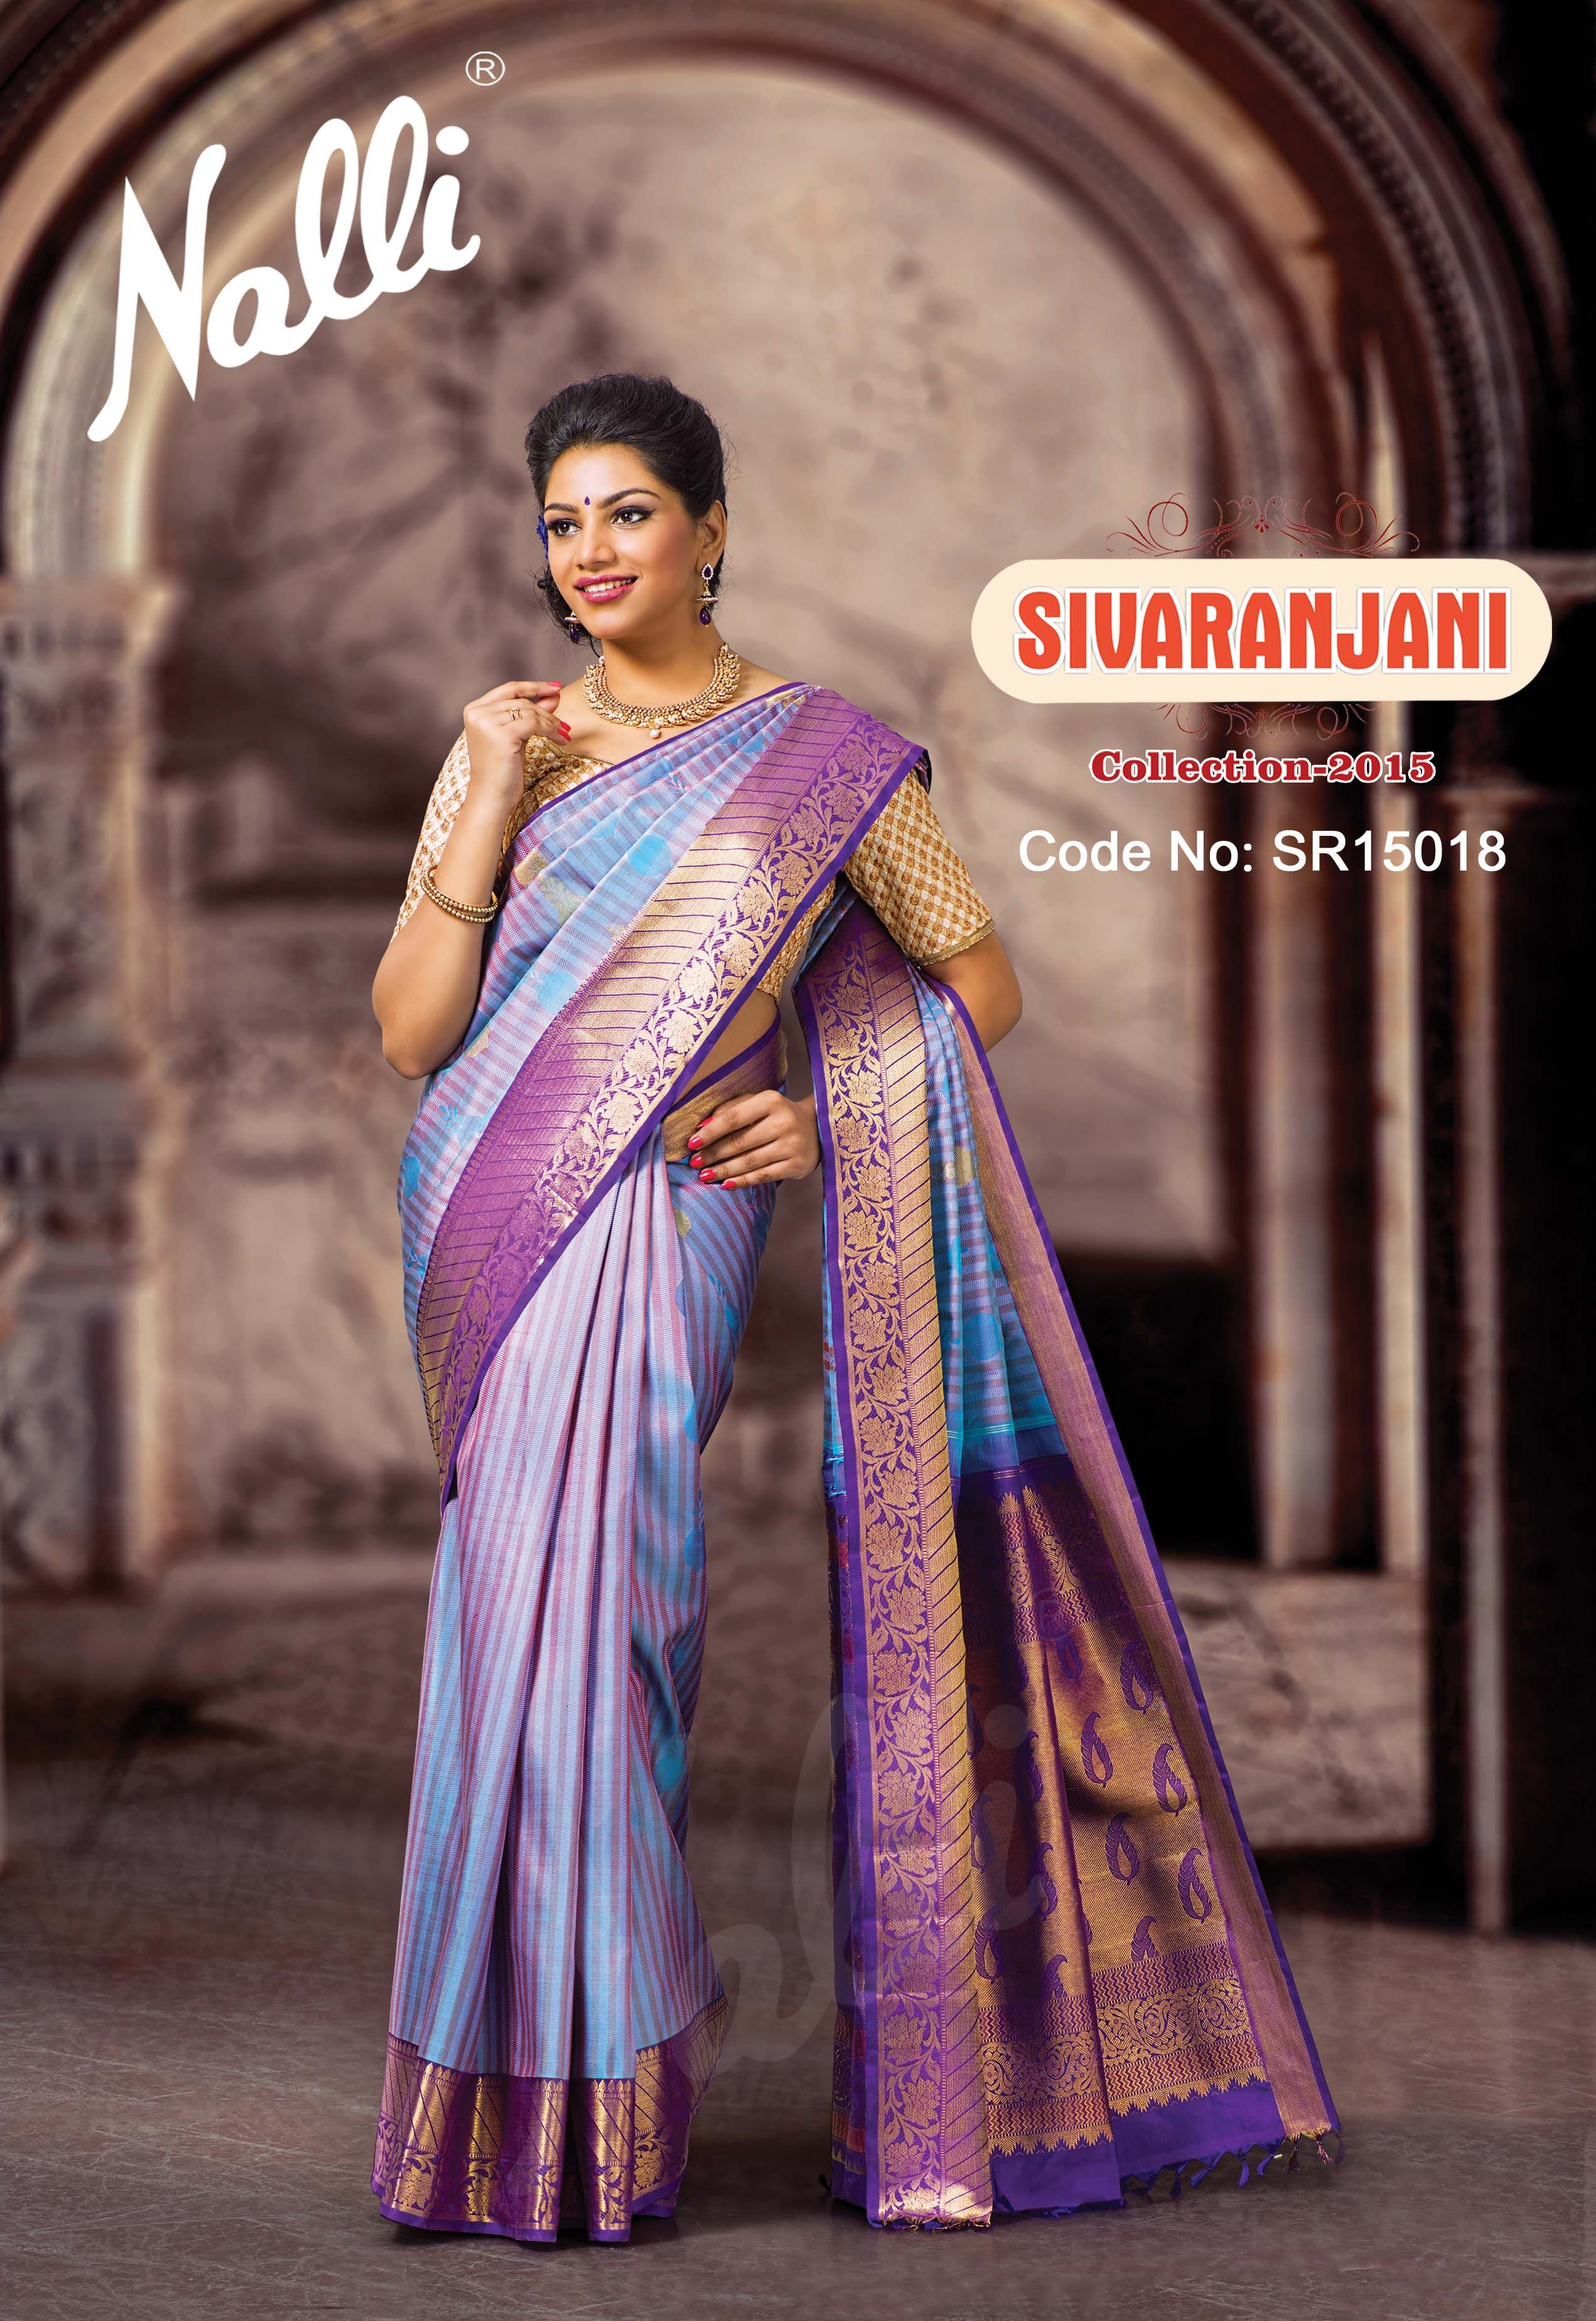 code sr kanchipuram silk saree to know more about this code sr15018 kanchipuram silk saree to know more about this product contact our eshop